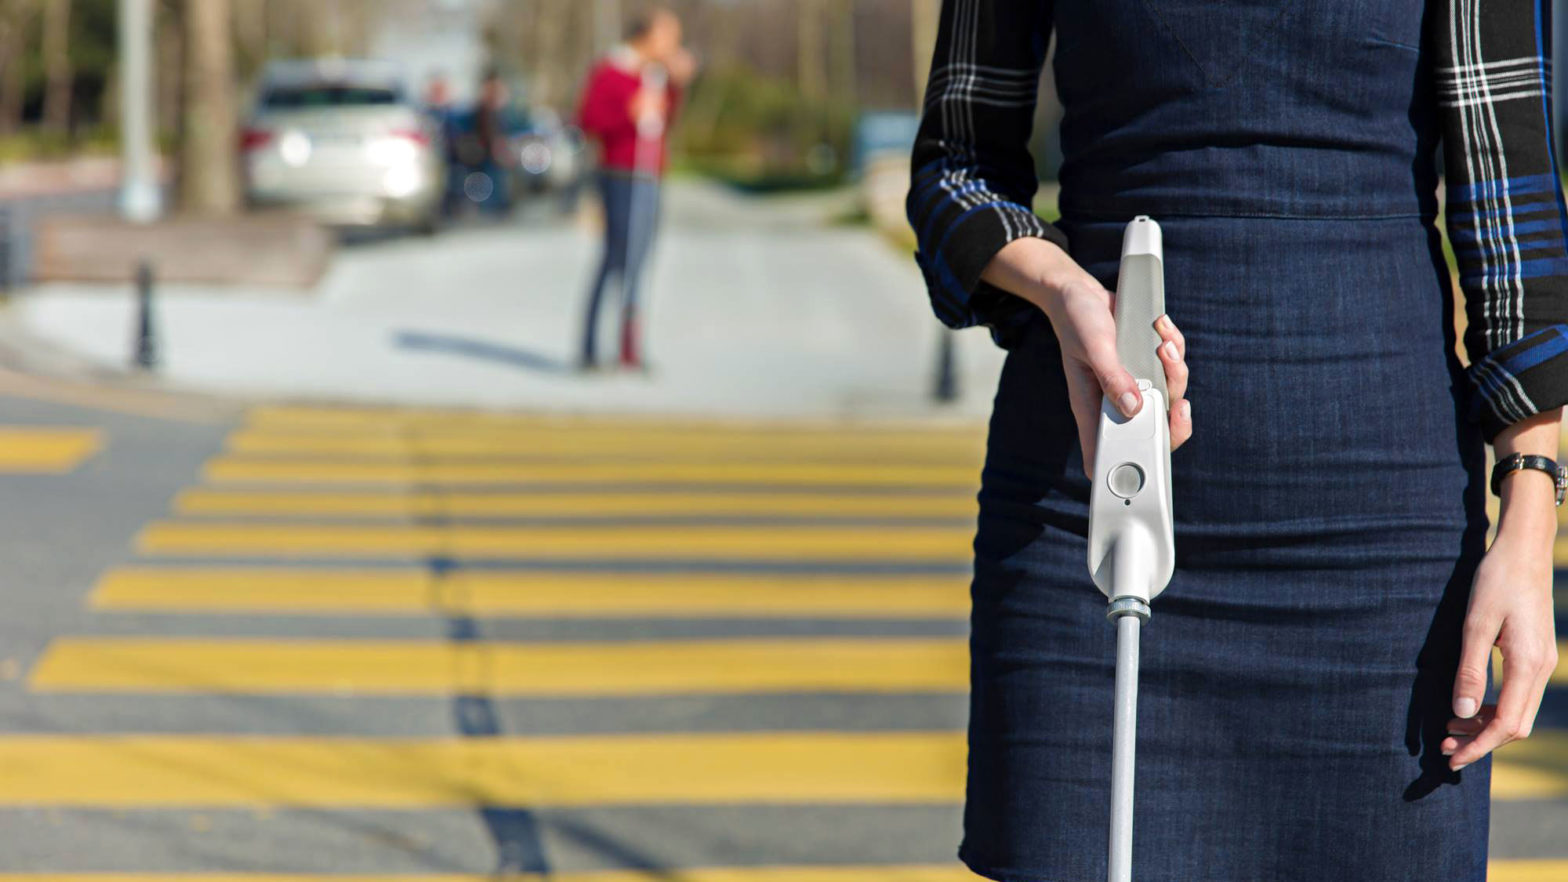 Smart Cane for the Visually Impaired